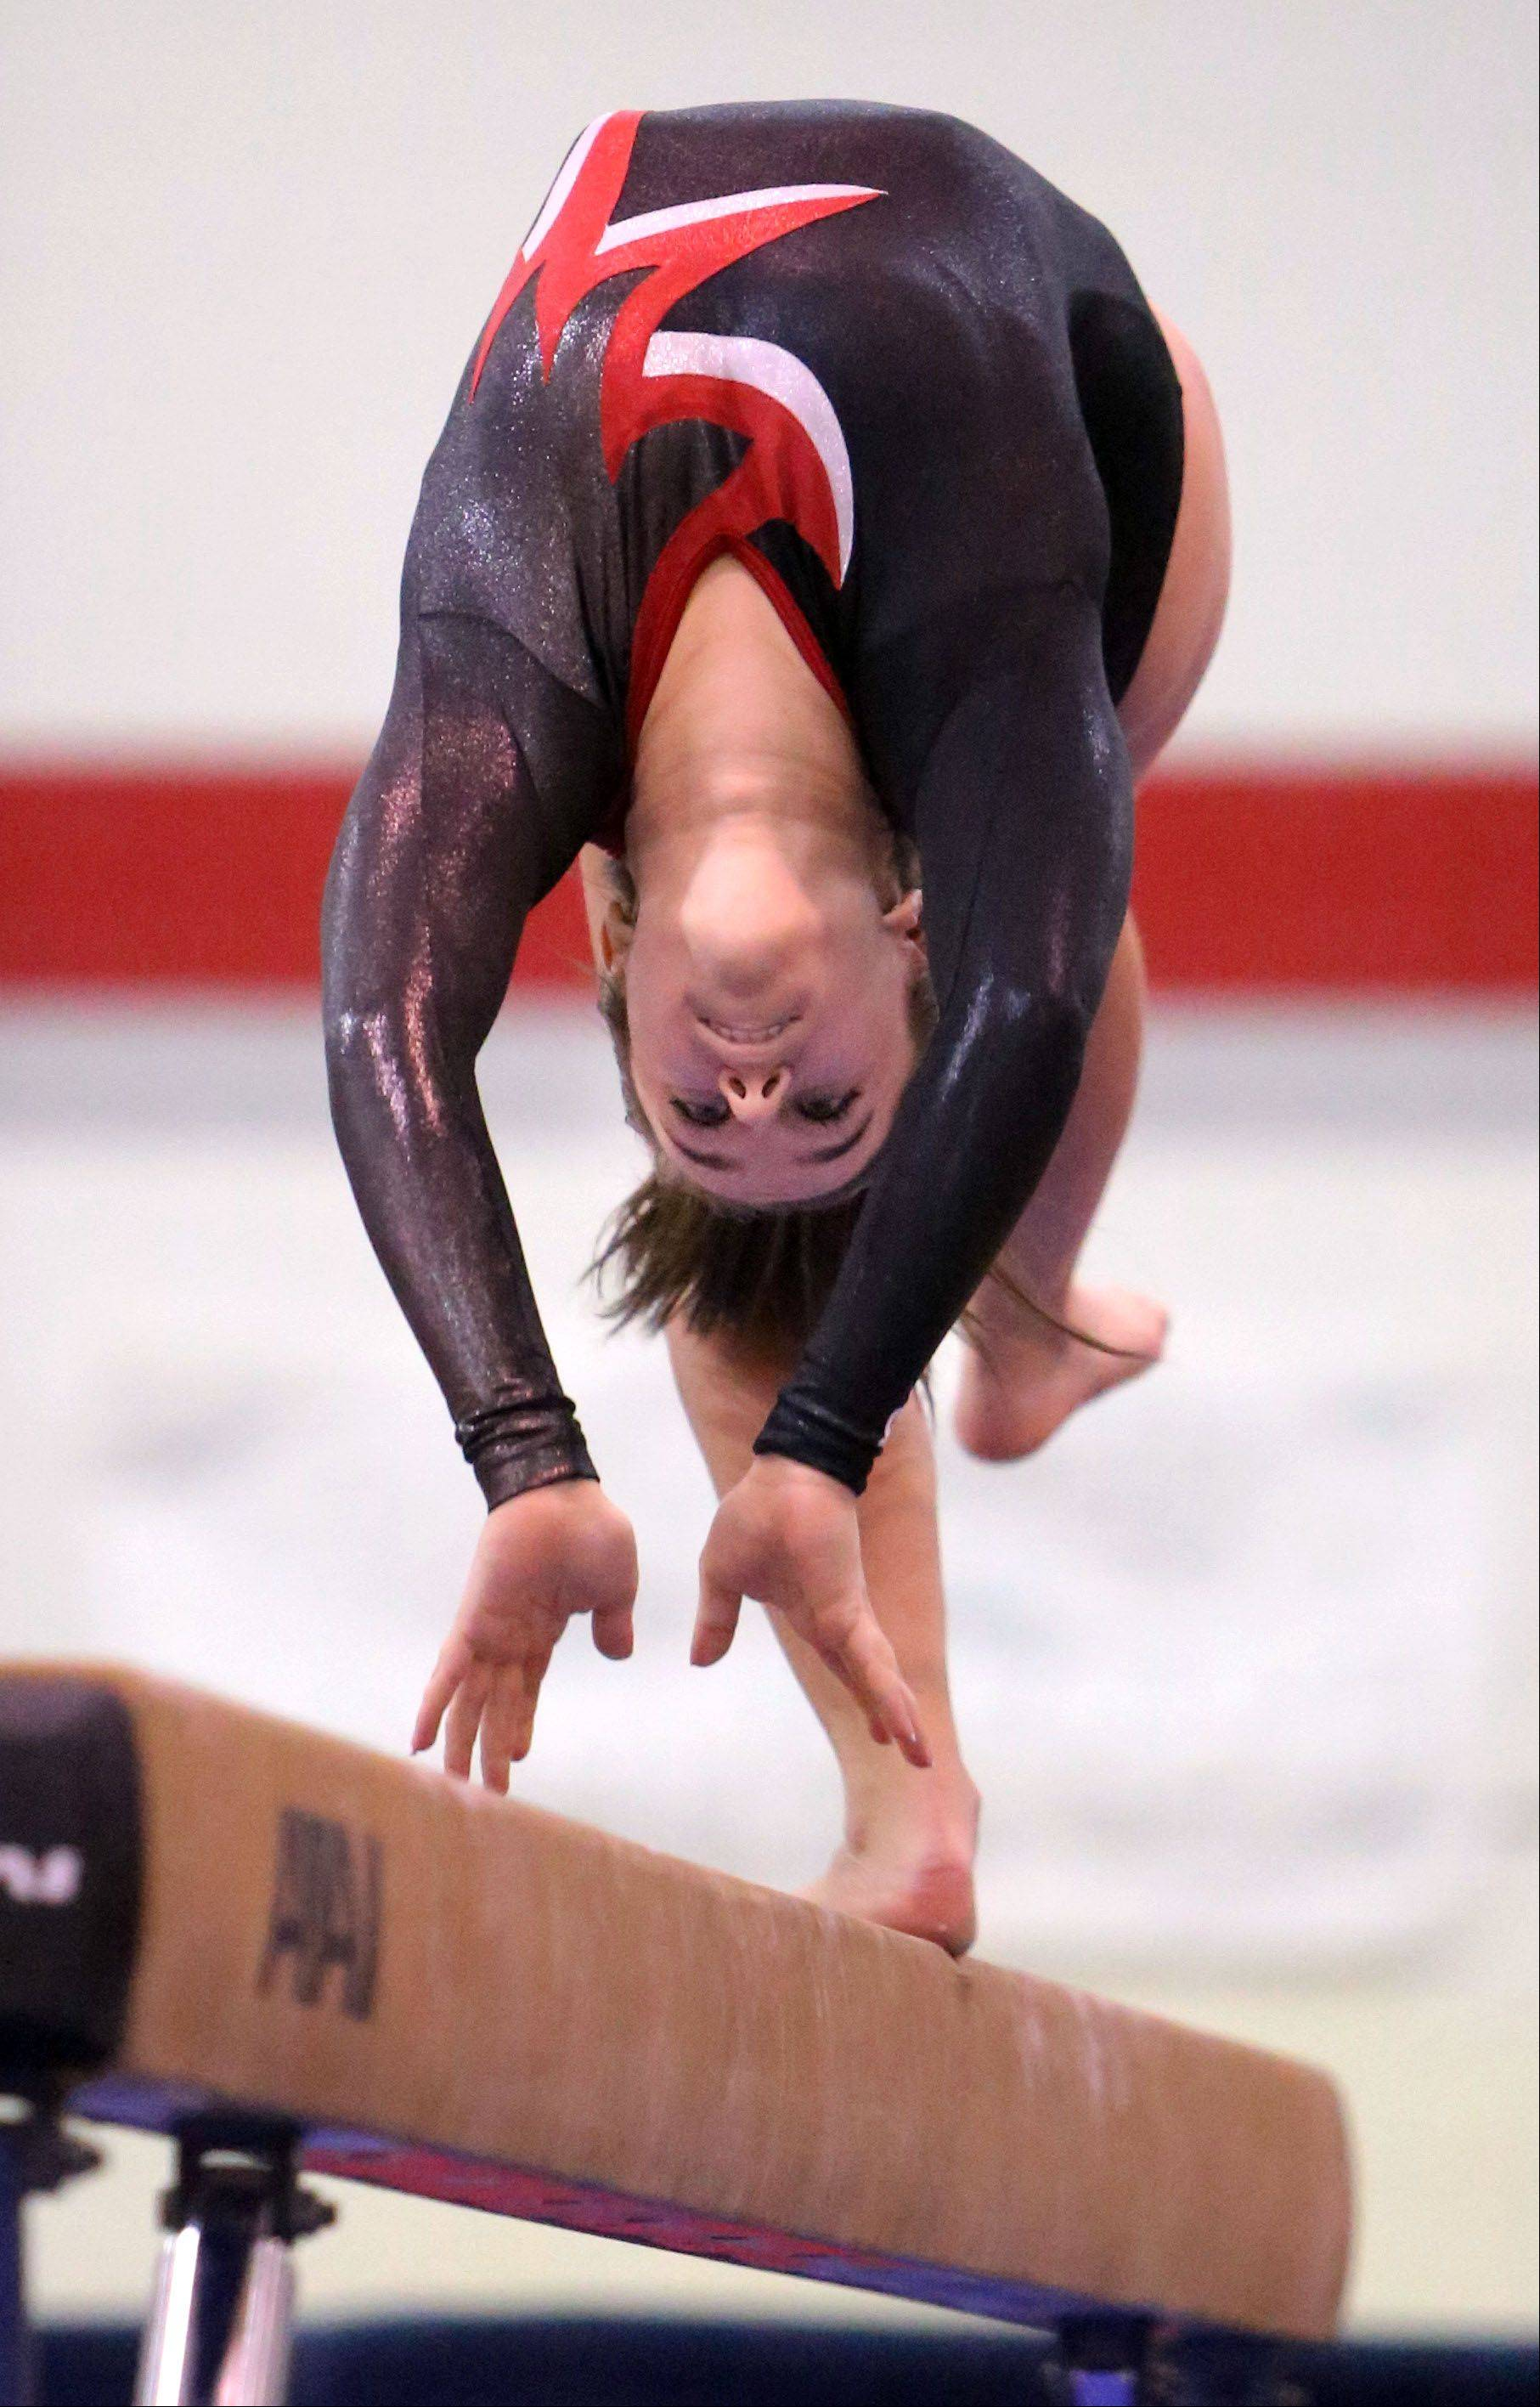 Mundelein's Nicole Ornoff competes on balance beam during Monday's regional at Mundelein.